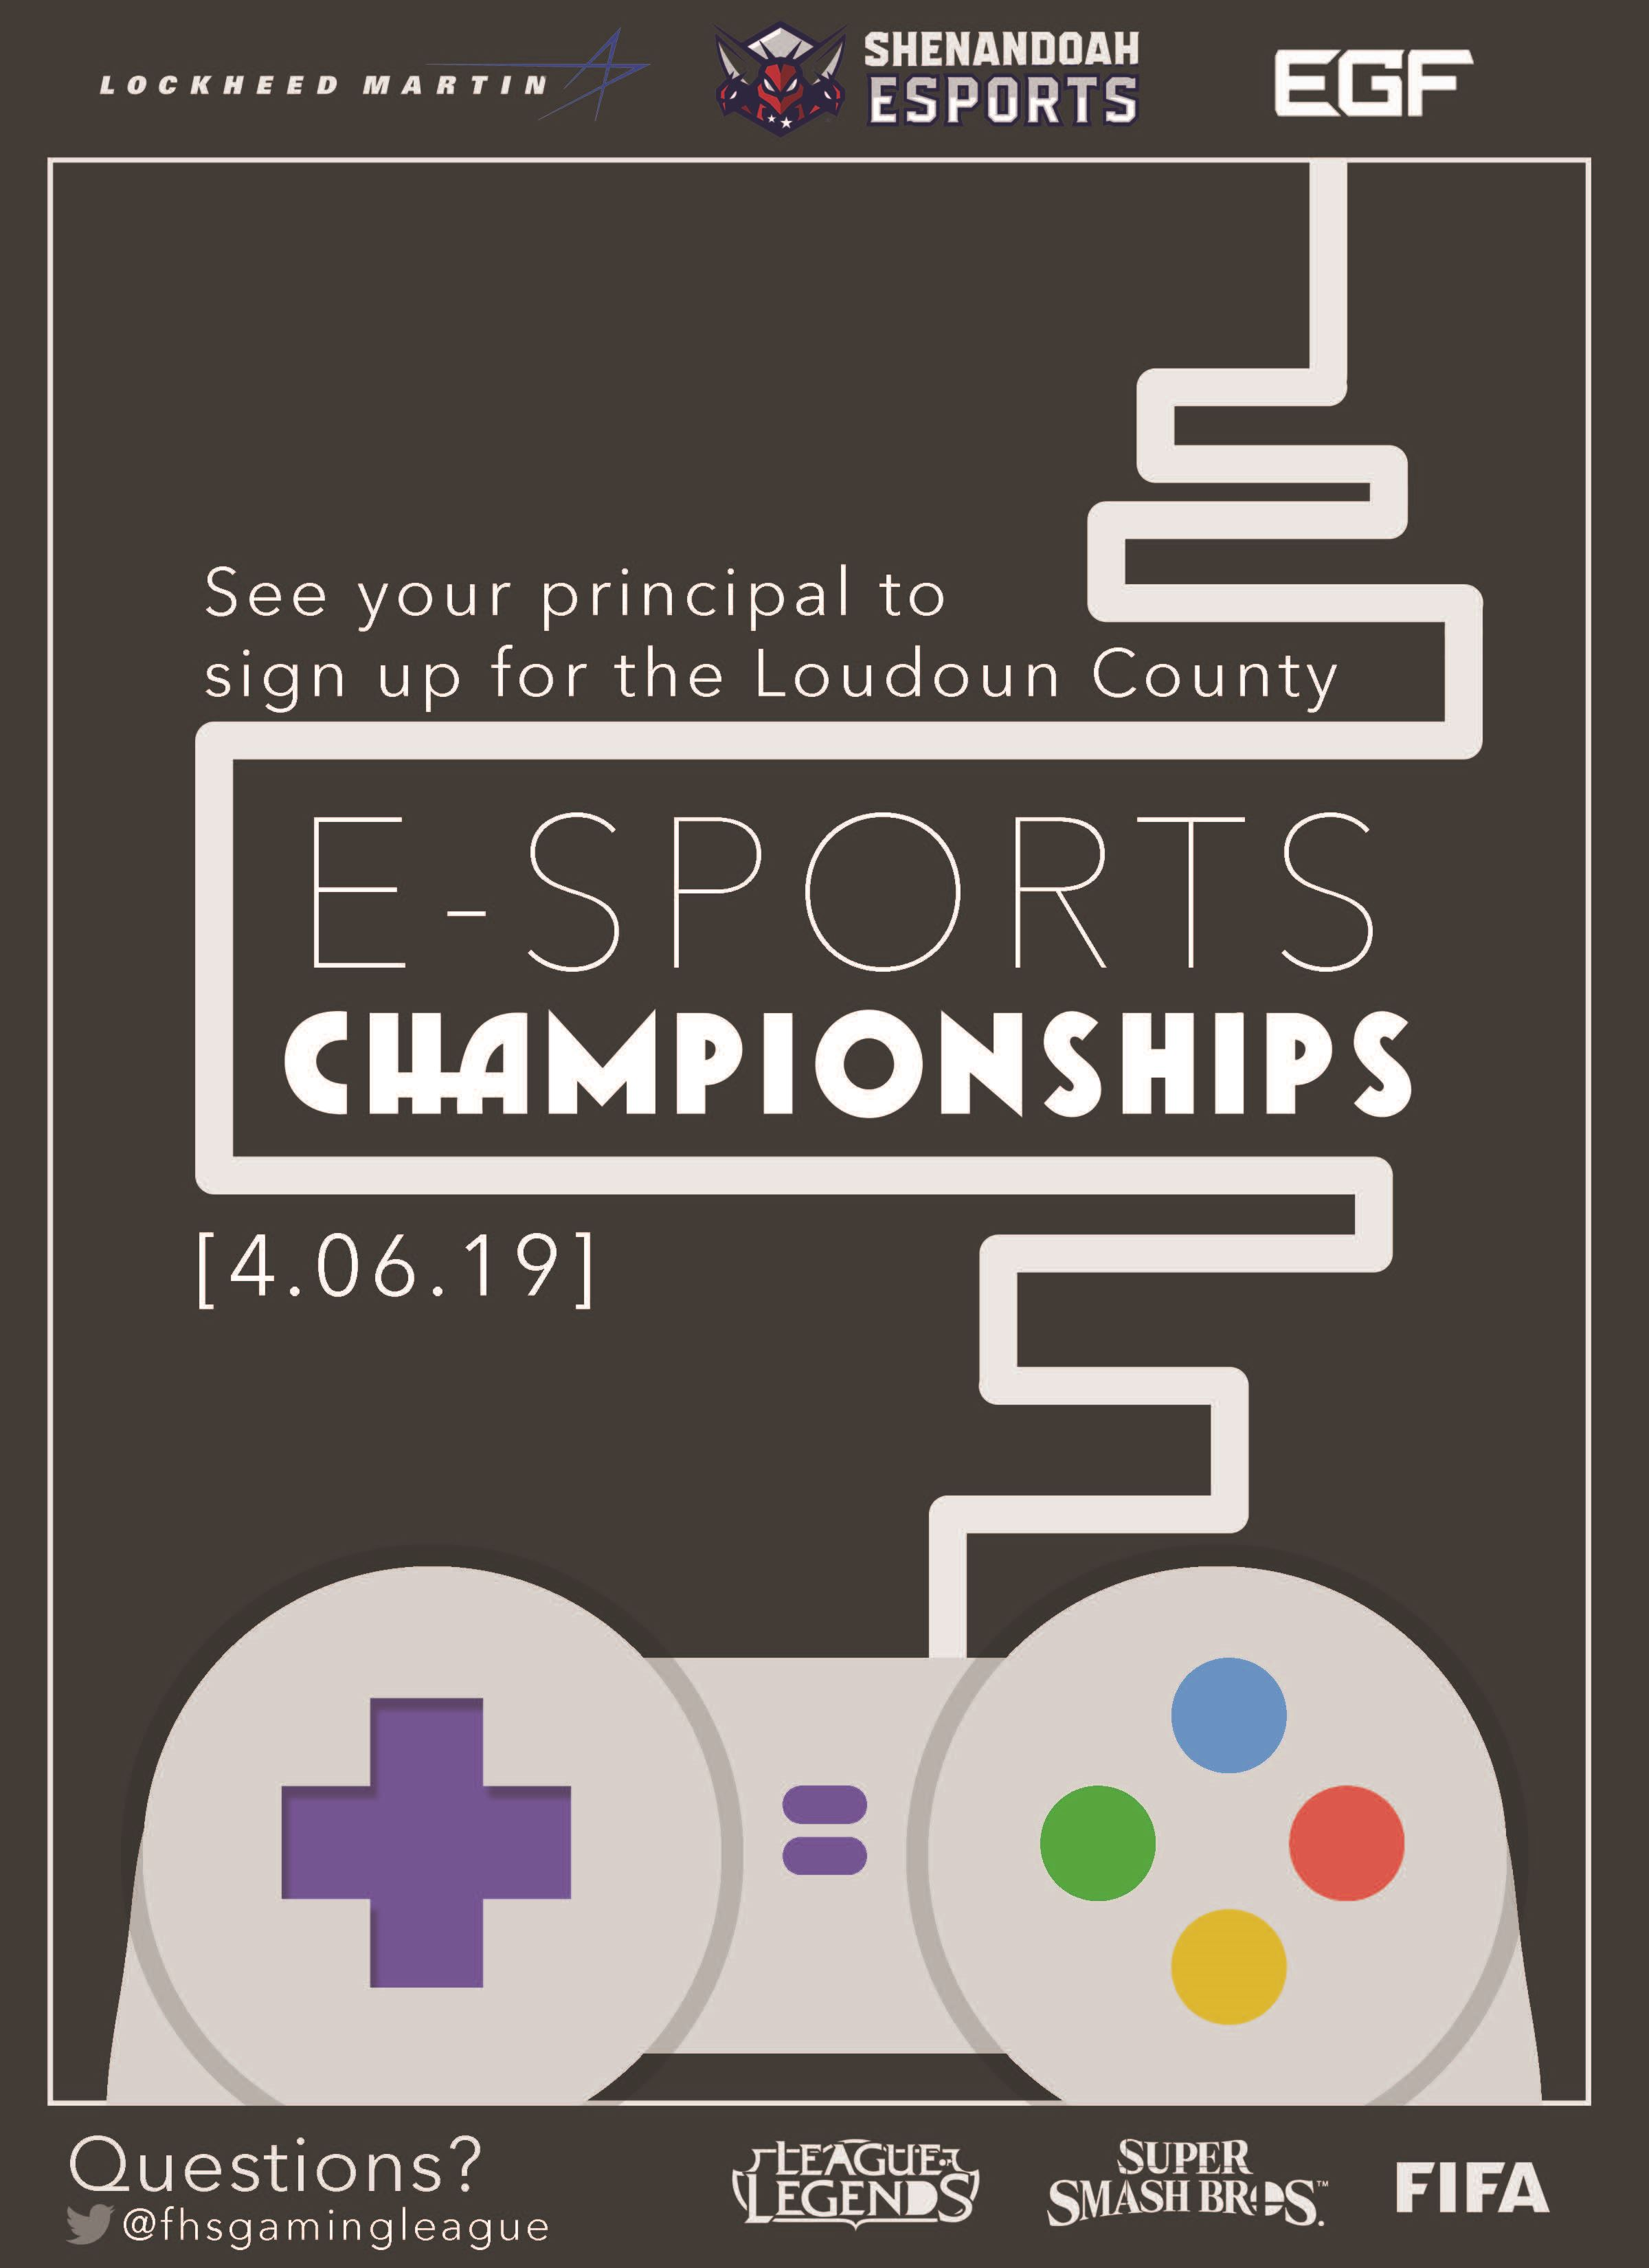 Freedom to Host E-Sports Championships